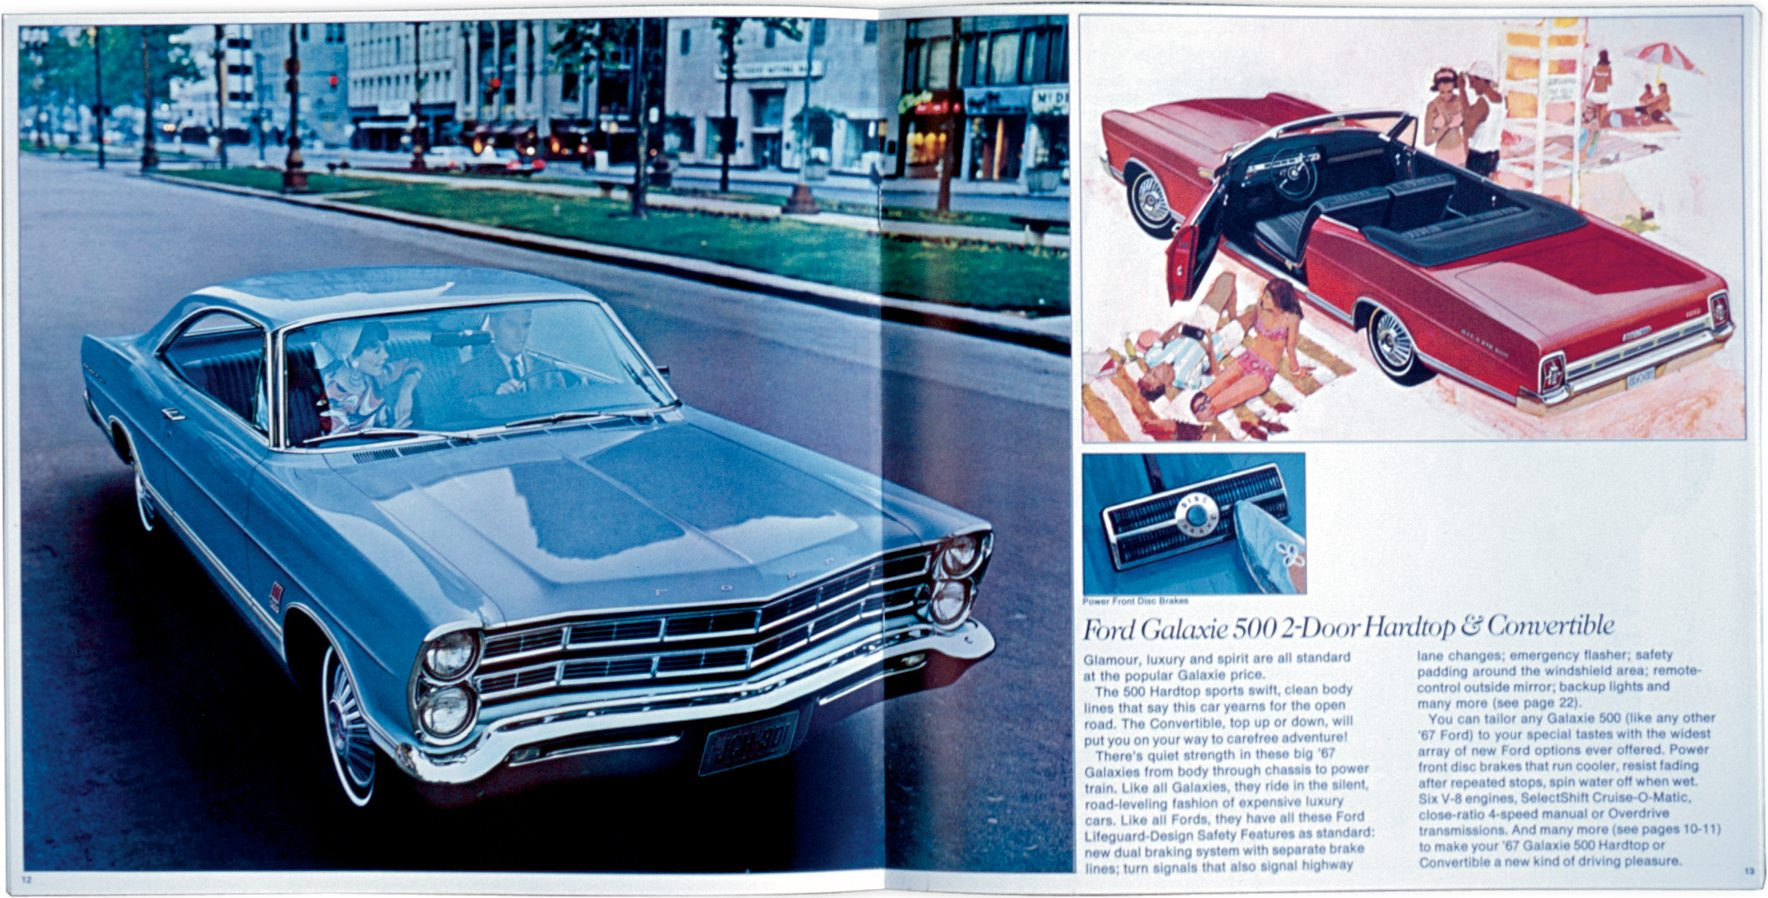 1967 Ford Galaxie in vintage Ford brochure showing their full-sized cars